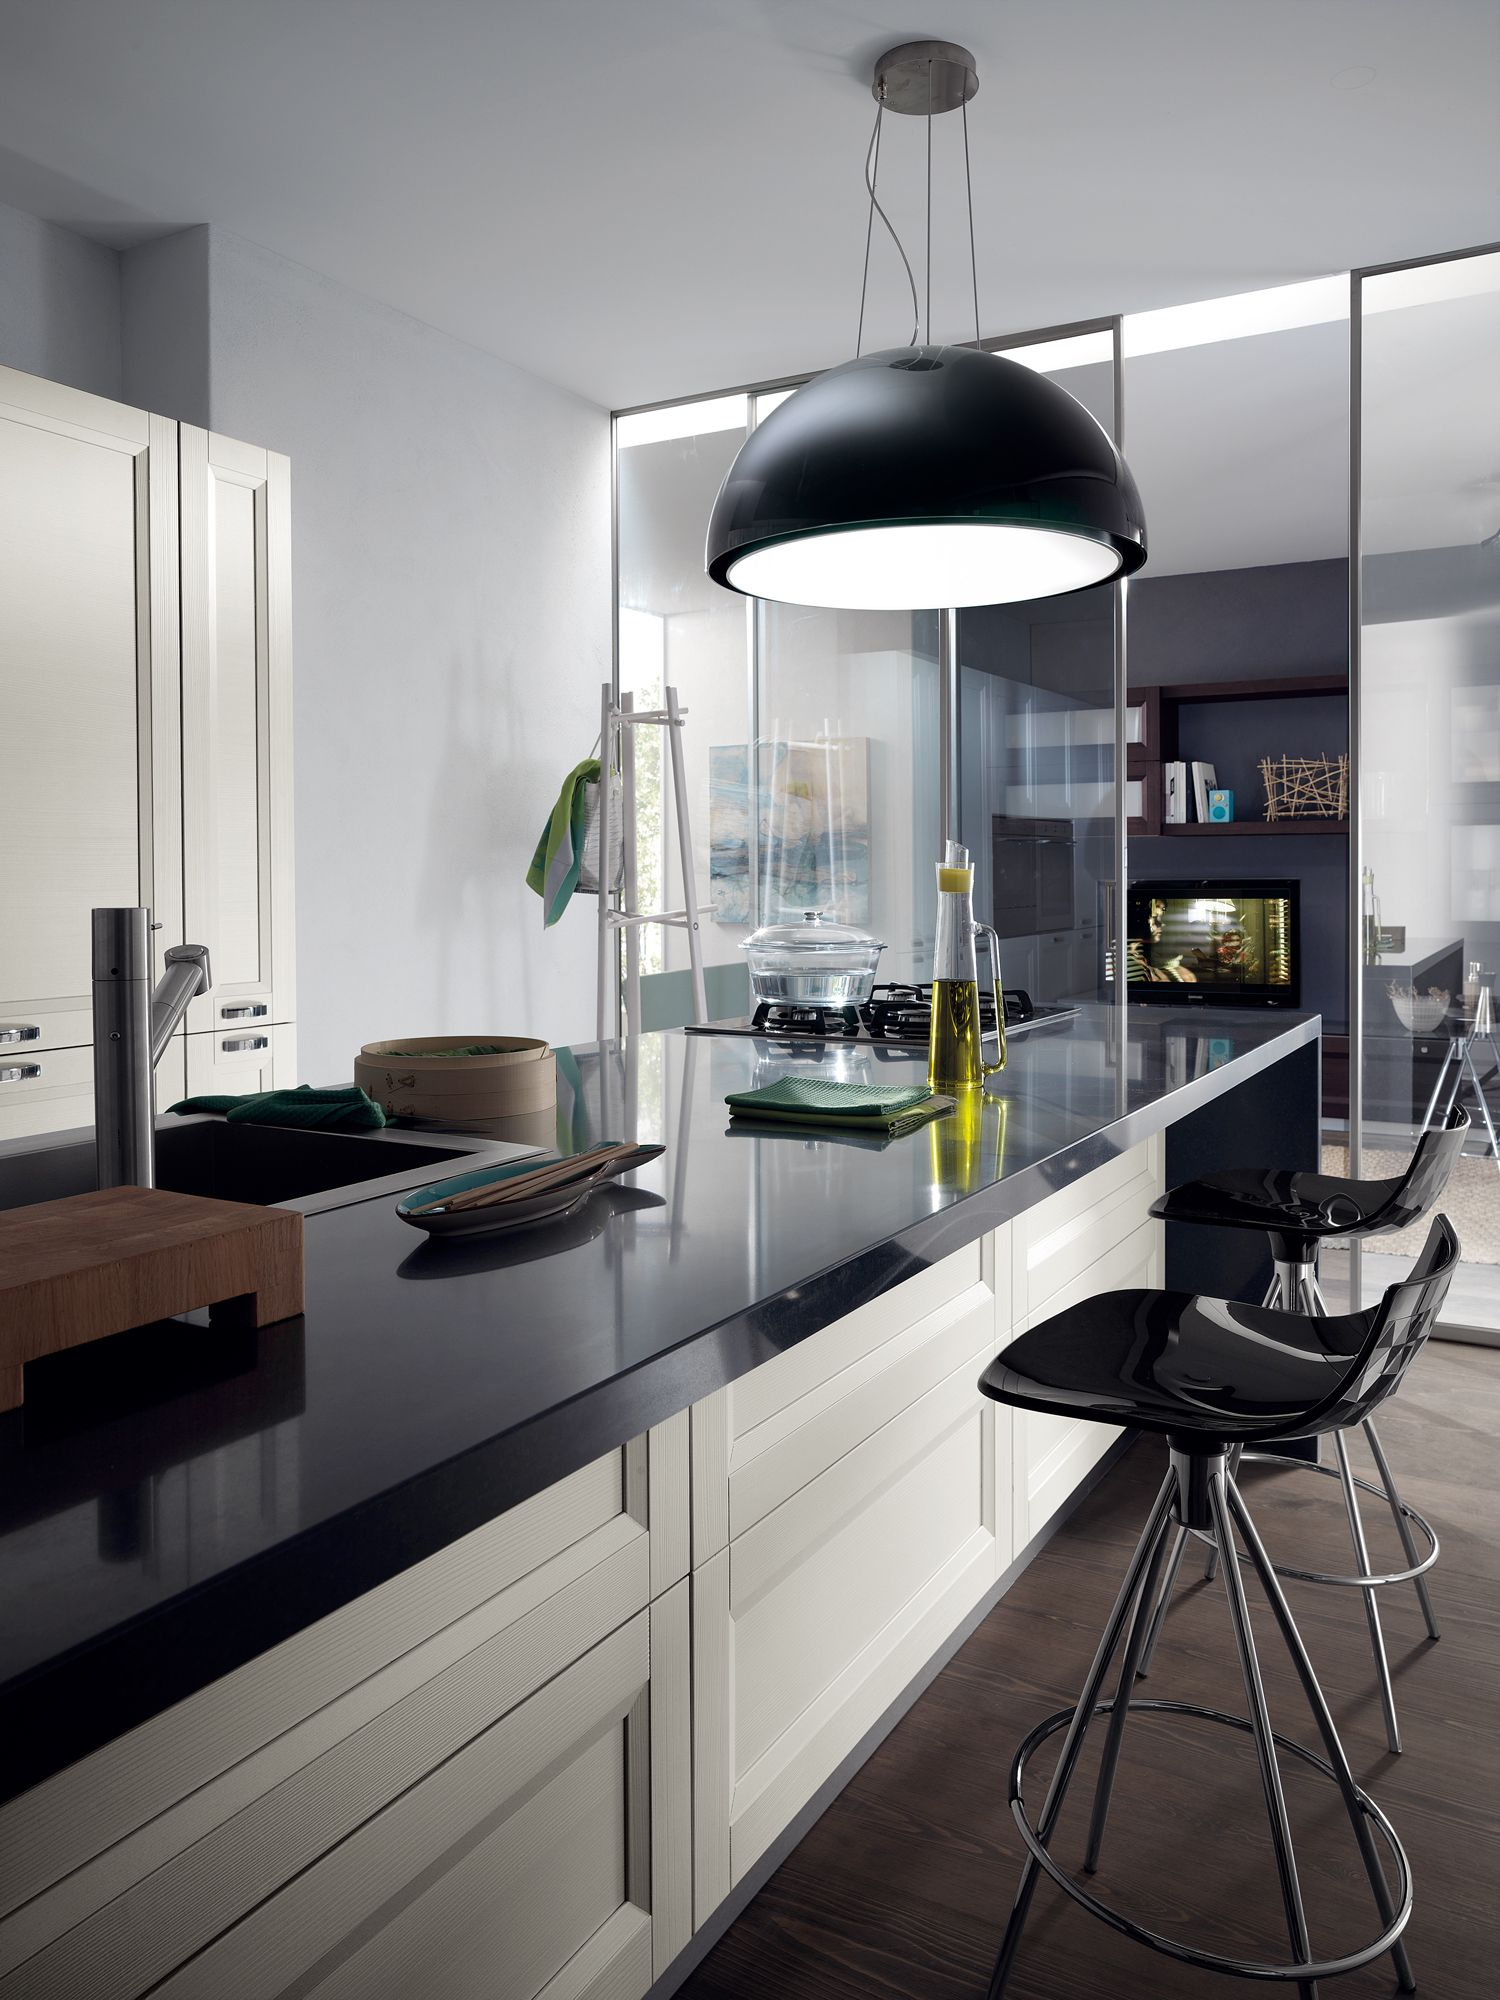 Esprit #kitchen by Scavolini. Open to the rest of the home, the ...